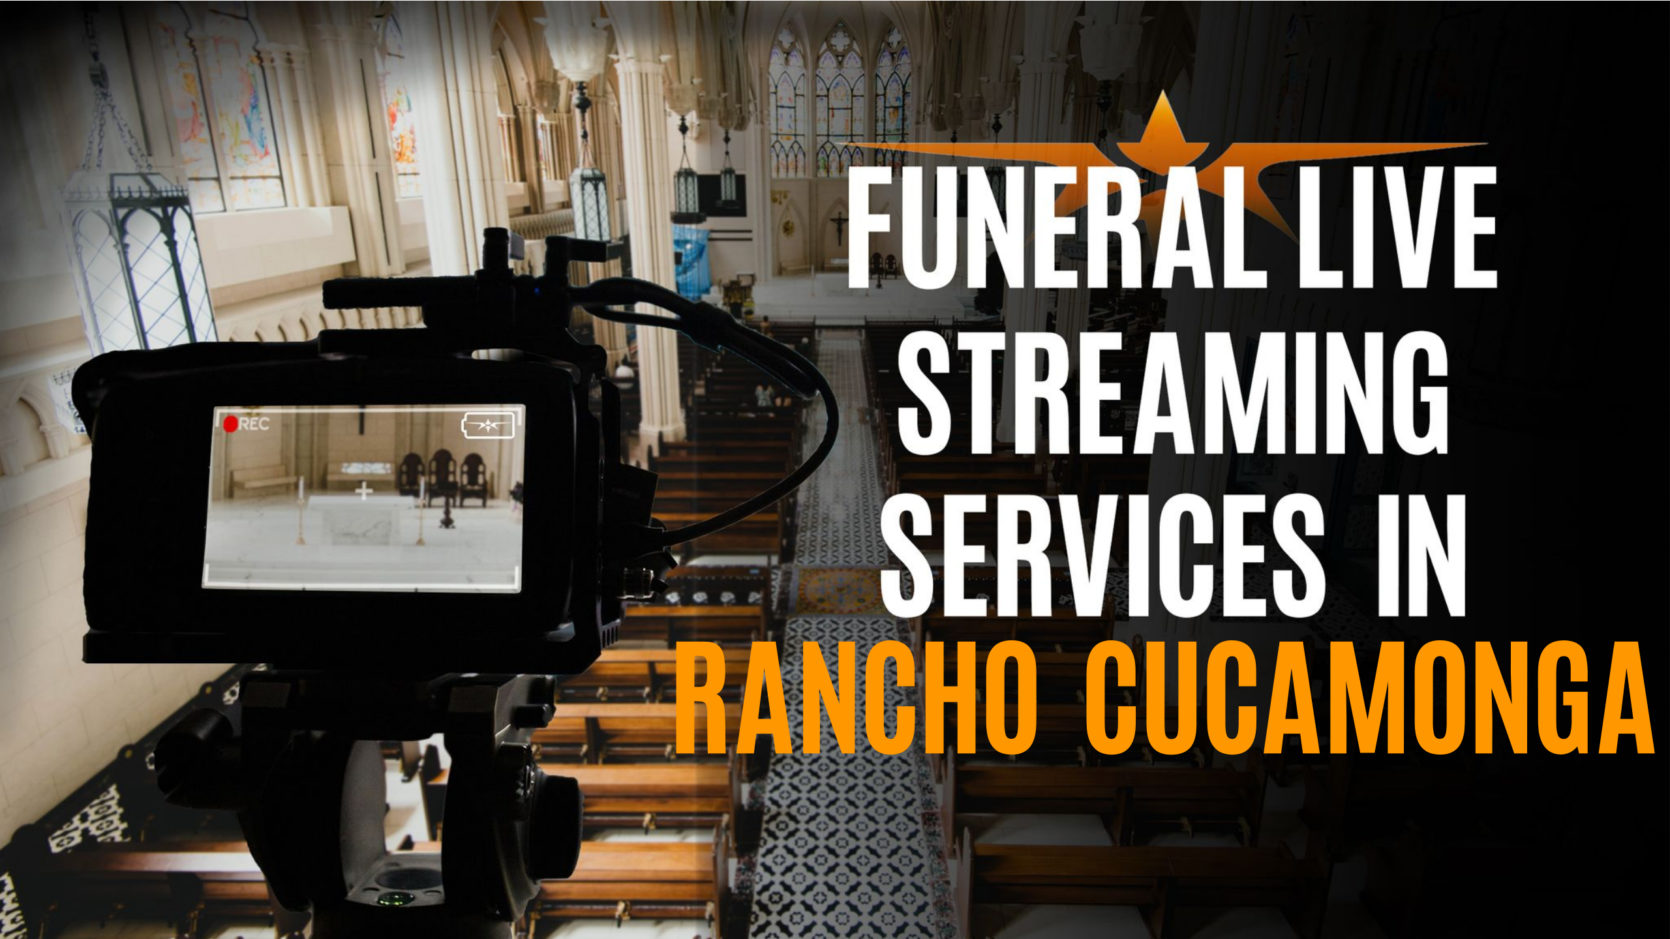 Funeral Live Streaming Services in Rancho Cucamonga